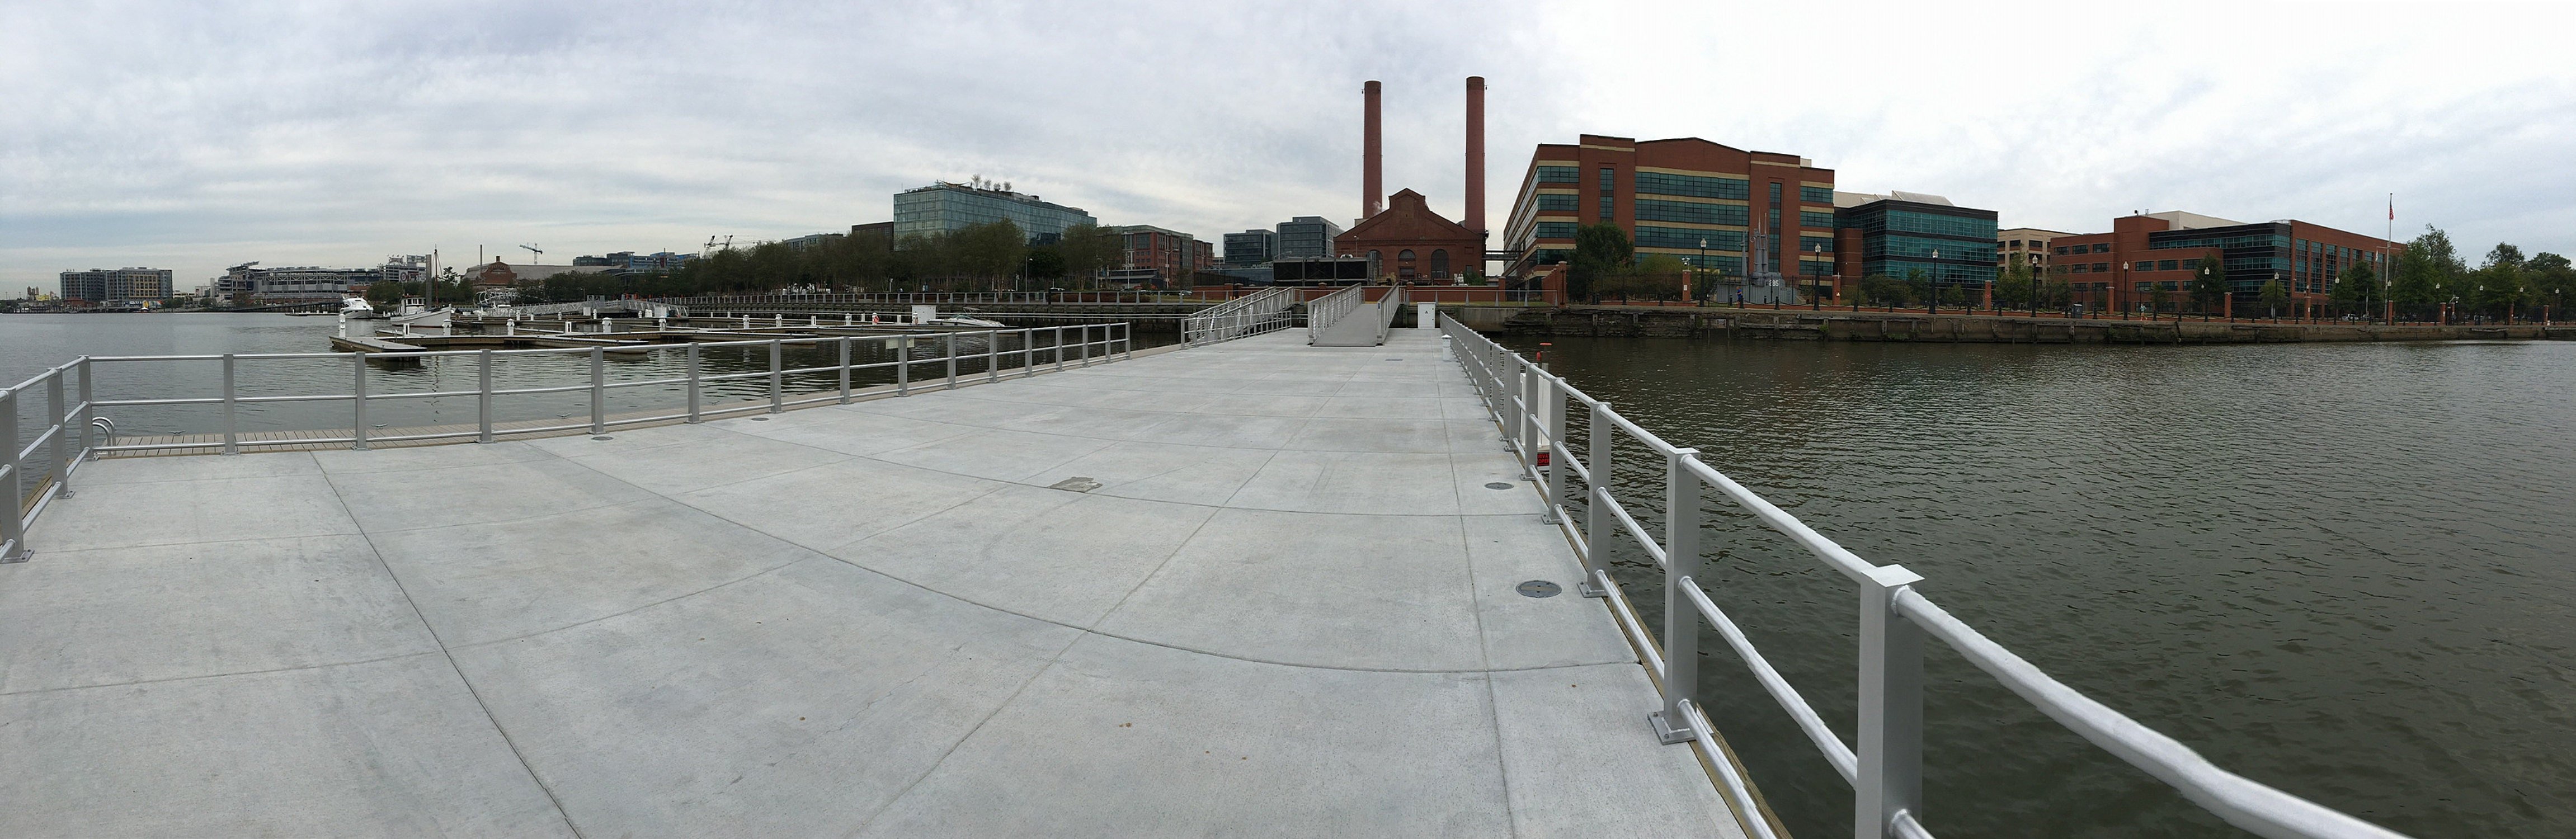 On the Anacostia River at The Navy Yard